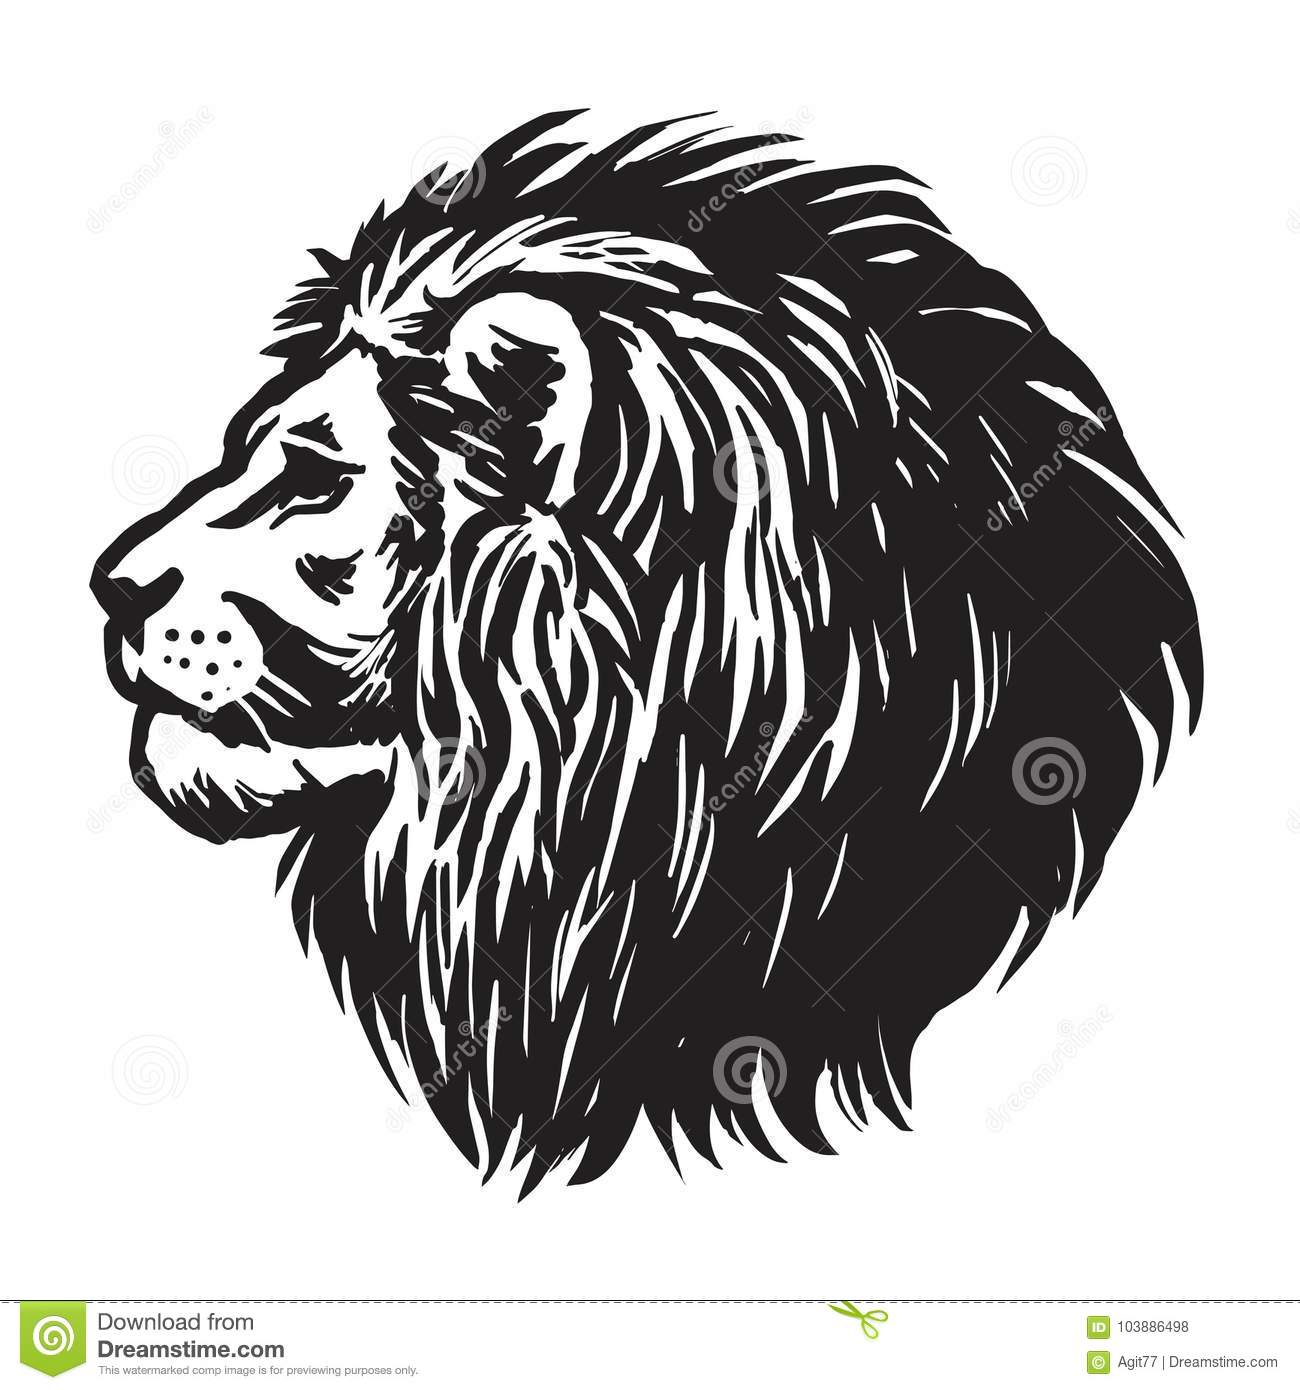 Lion Head Drawing Stock Illustrations 6 032 Lion Head Drawing Stock Illustrations Vectors Clipart Dreamstime Vector drawings sketches different predator , tigers lions cheetahs and leopards are drawn in ink by hand , objects with no. https www dreamstime com lion head realistic hand drawn drawing vector illustration ink line image103886498